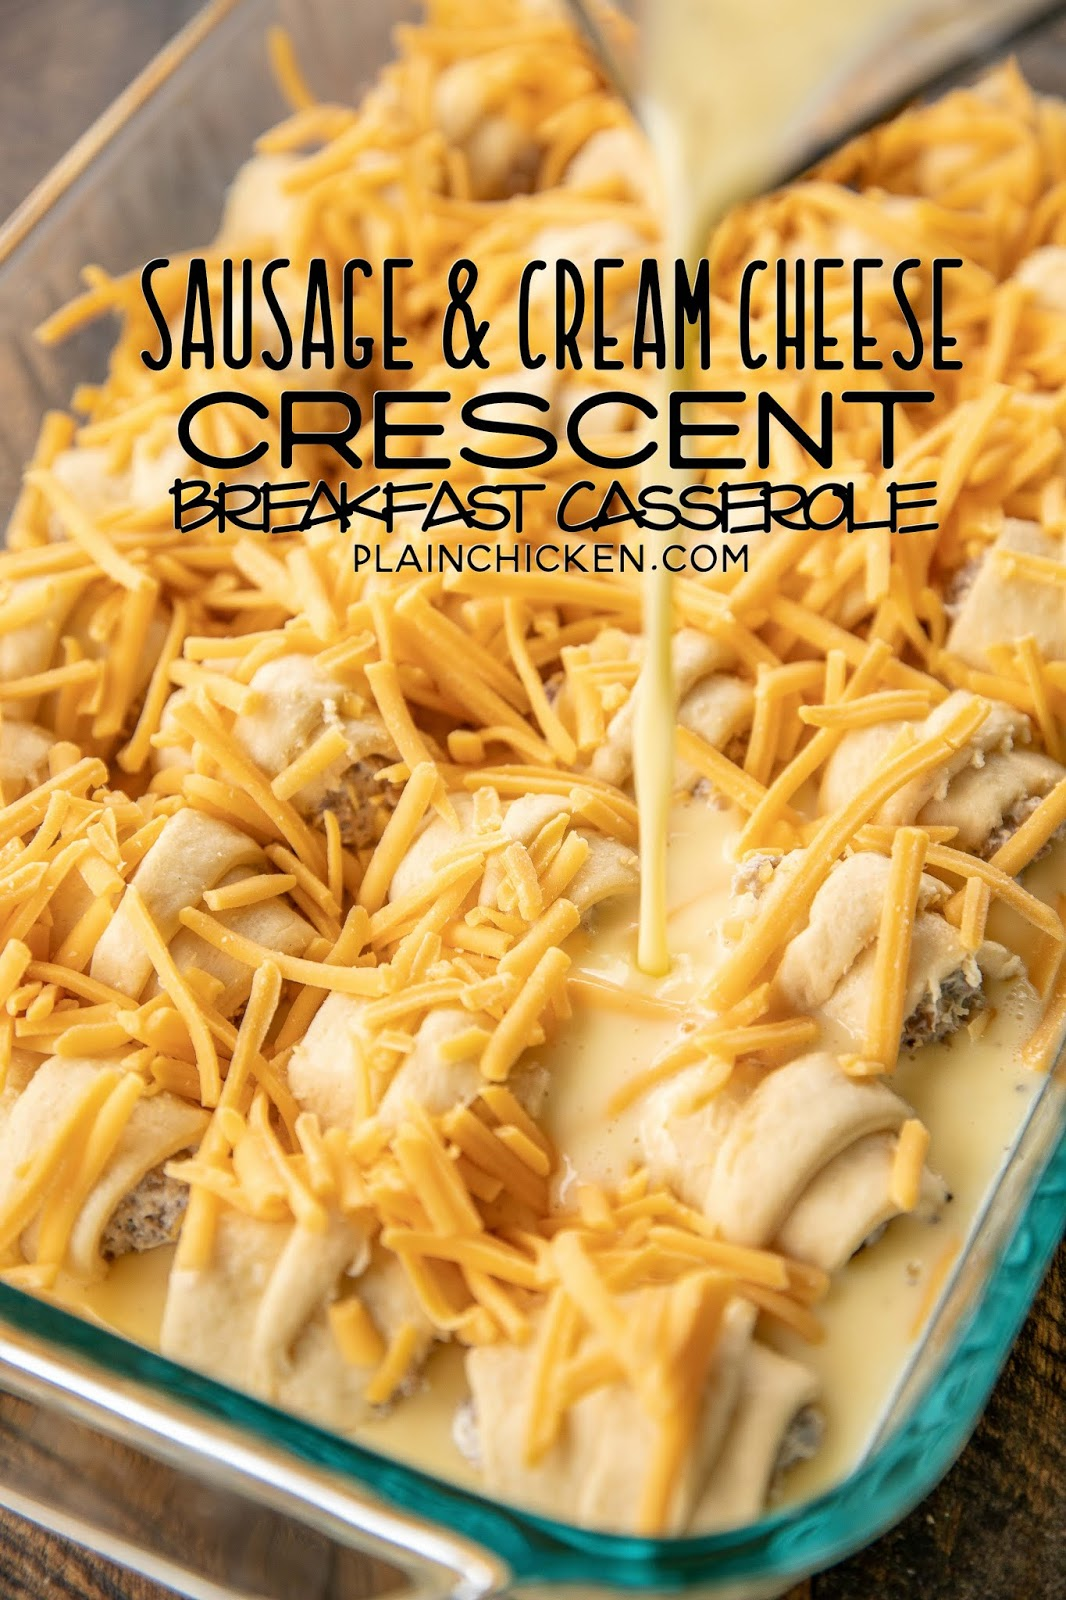 Sausage & Cream Cheese Crescent Breakfast Casserole